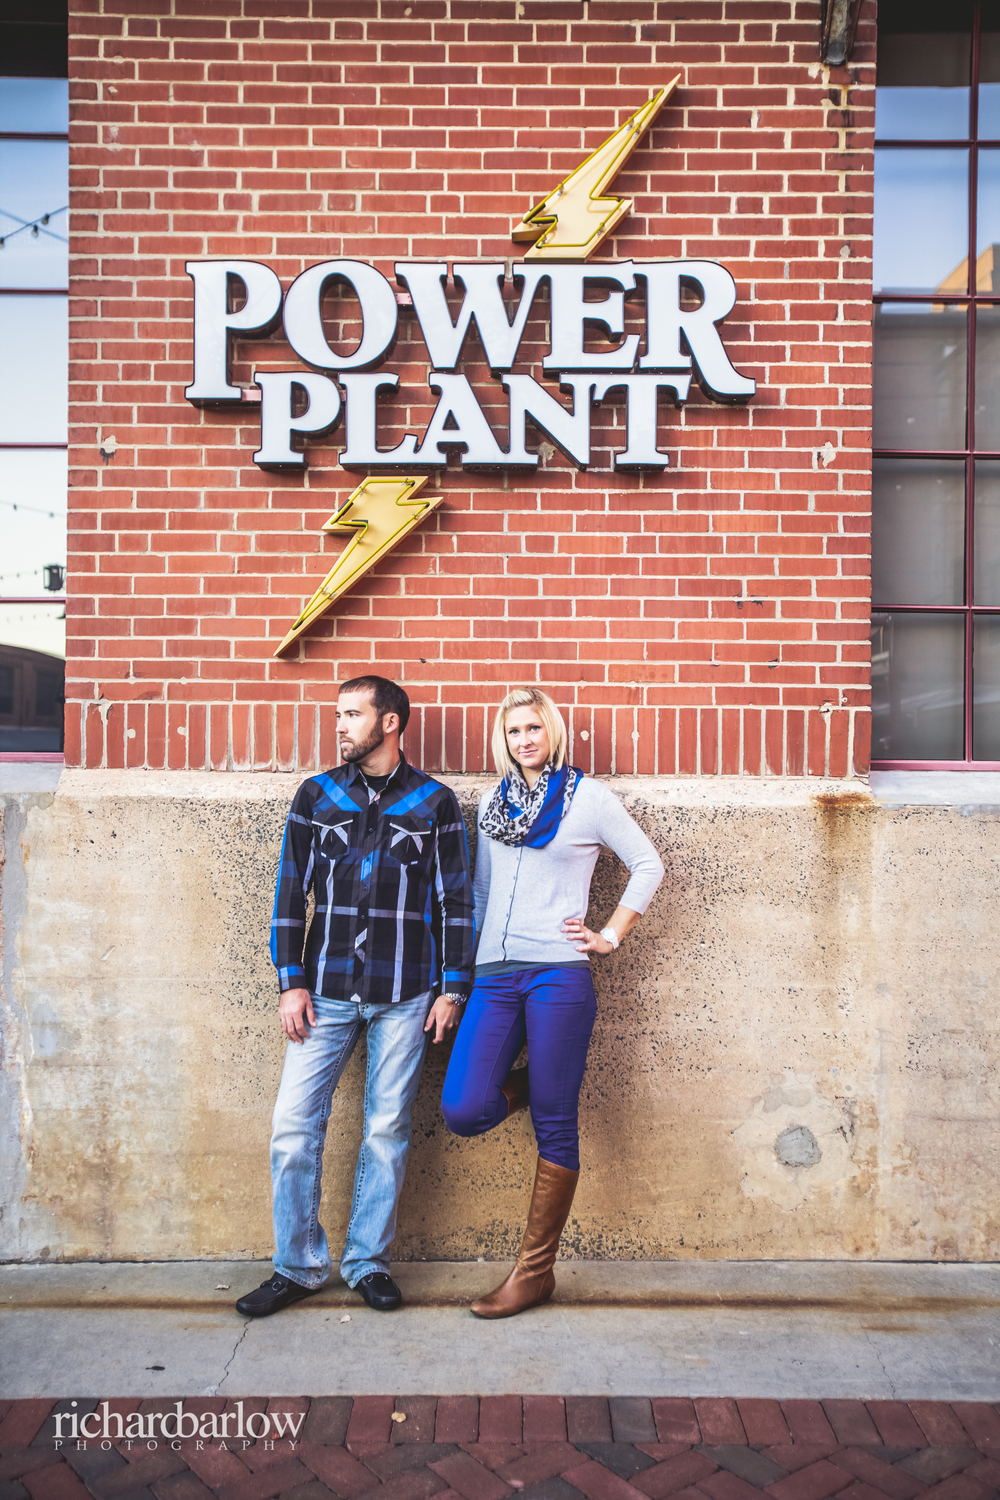 richard barlow photography - Mike and Renee Engagement Session NC-15.jpg